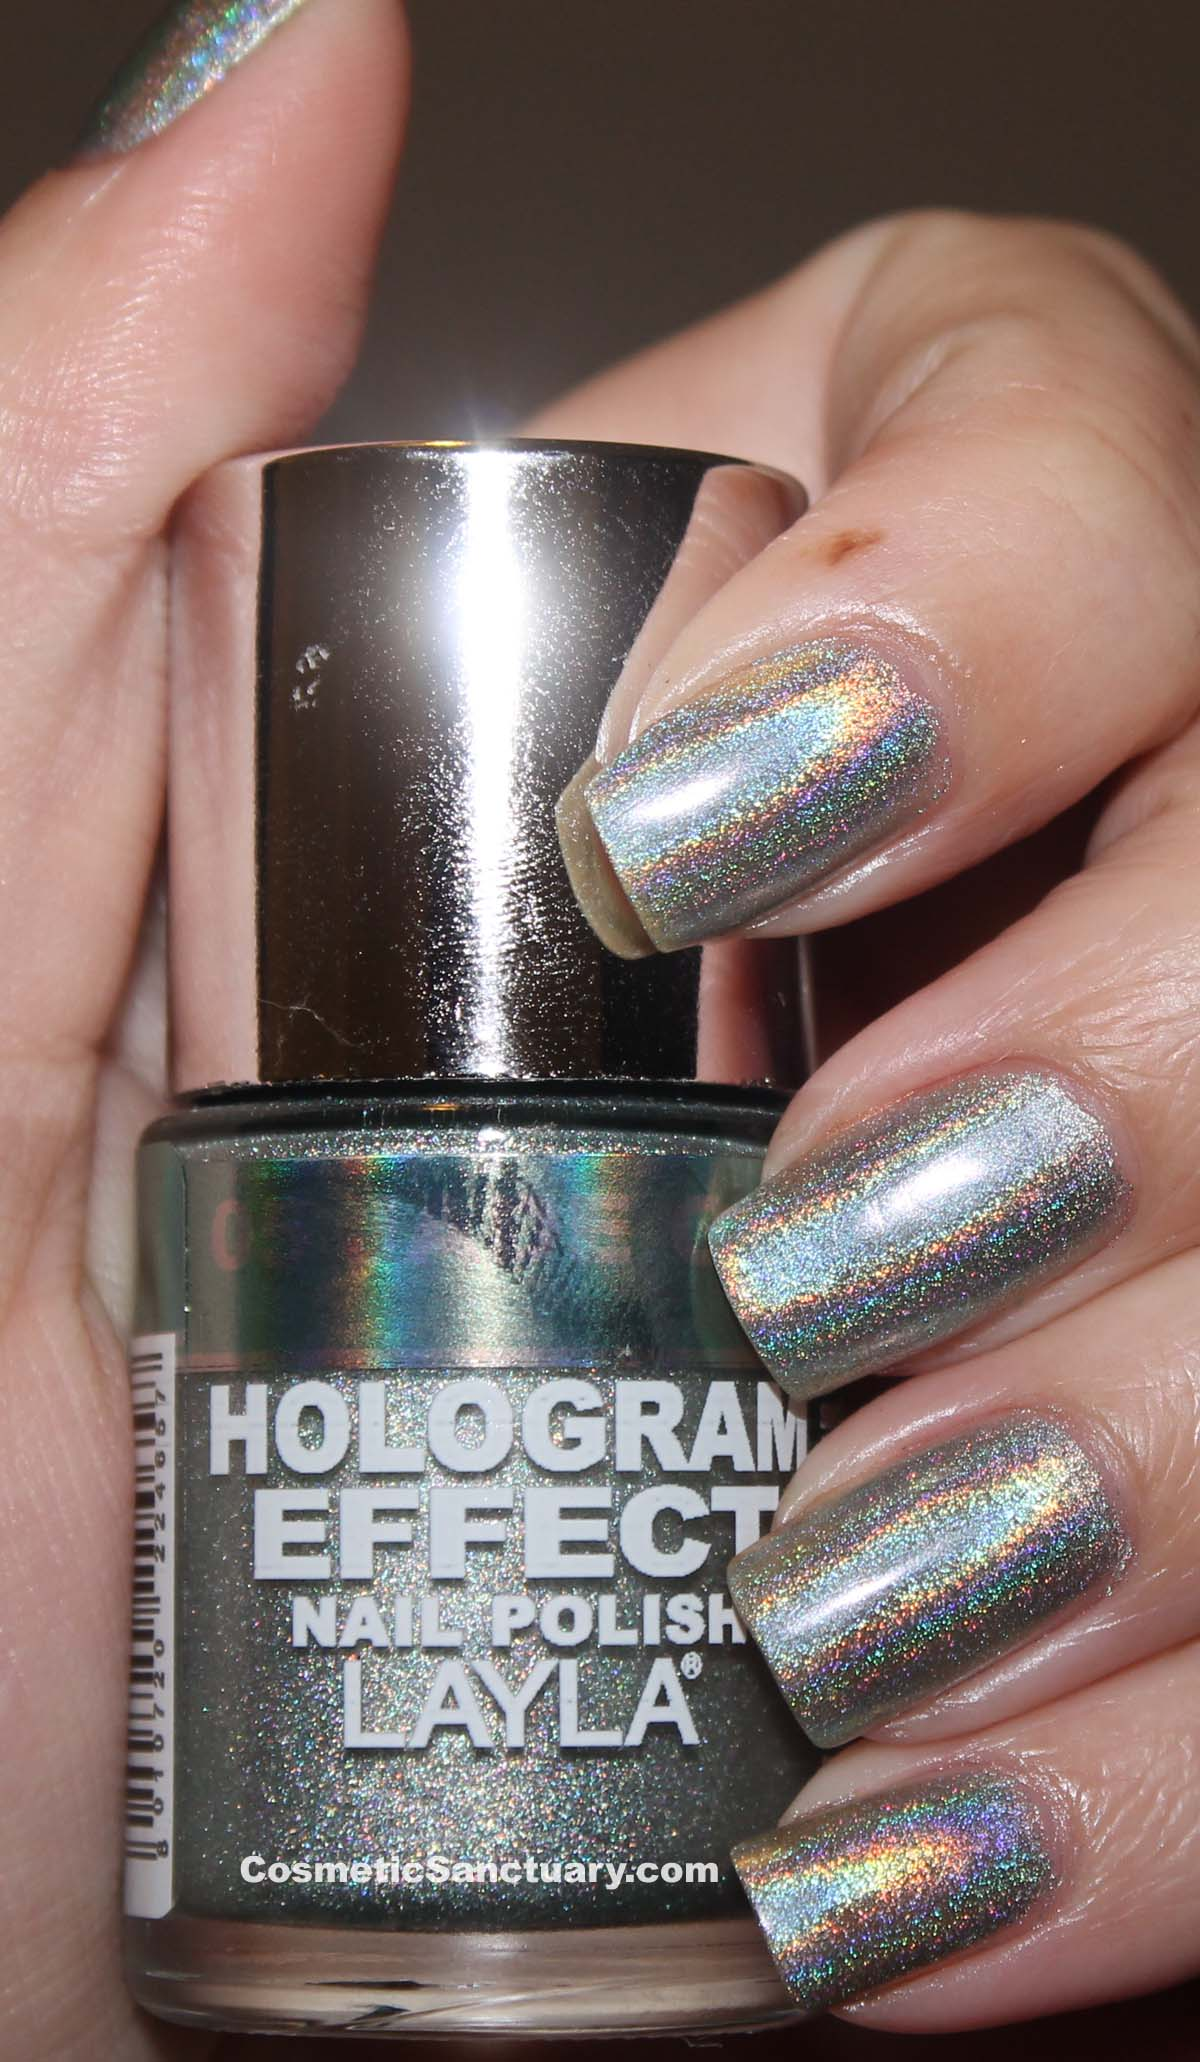 Holographic Nails: Layla Hologram Effect Nail Polish Swatches And Review